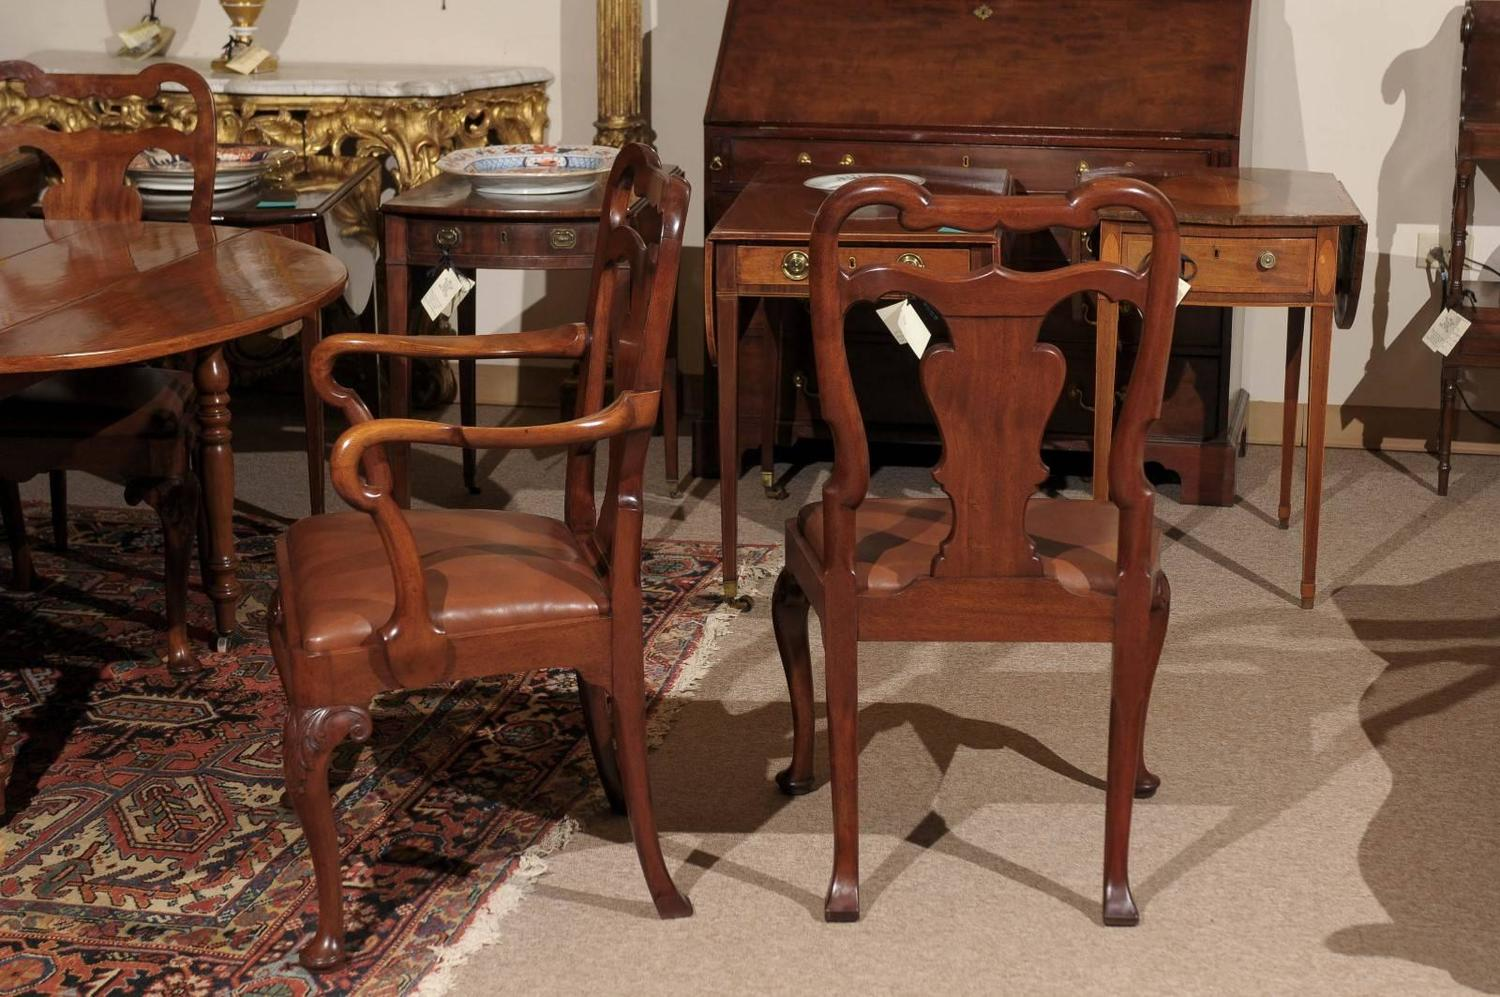 Set of Eight Queen Anne Style Mahogany Dining Chairs  : 102020167585Customz from www.1stdibs.com size 1500 x 997 jpeg 198kB